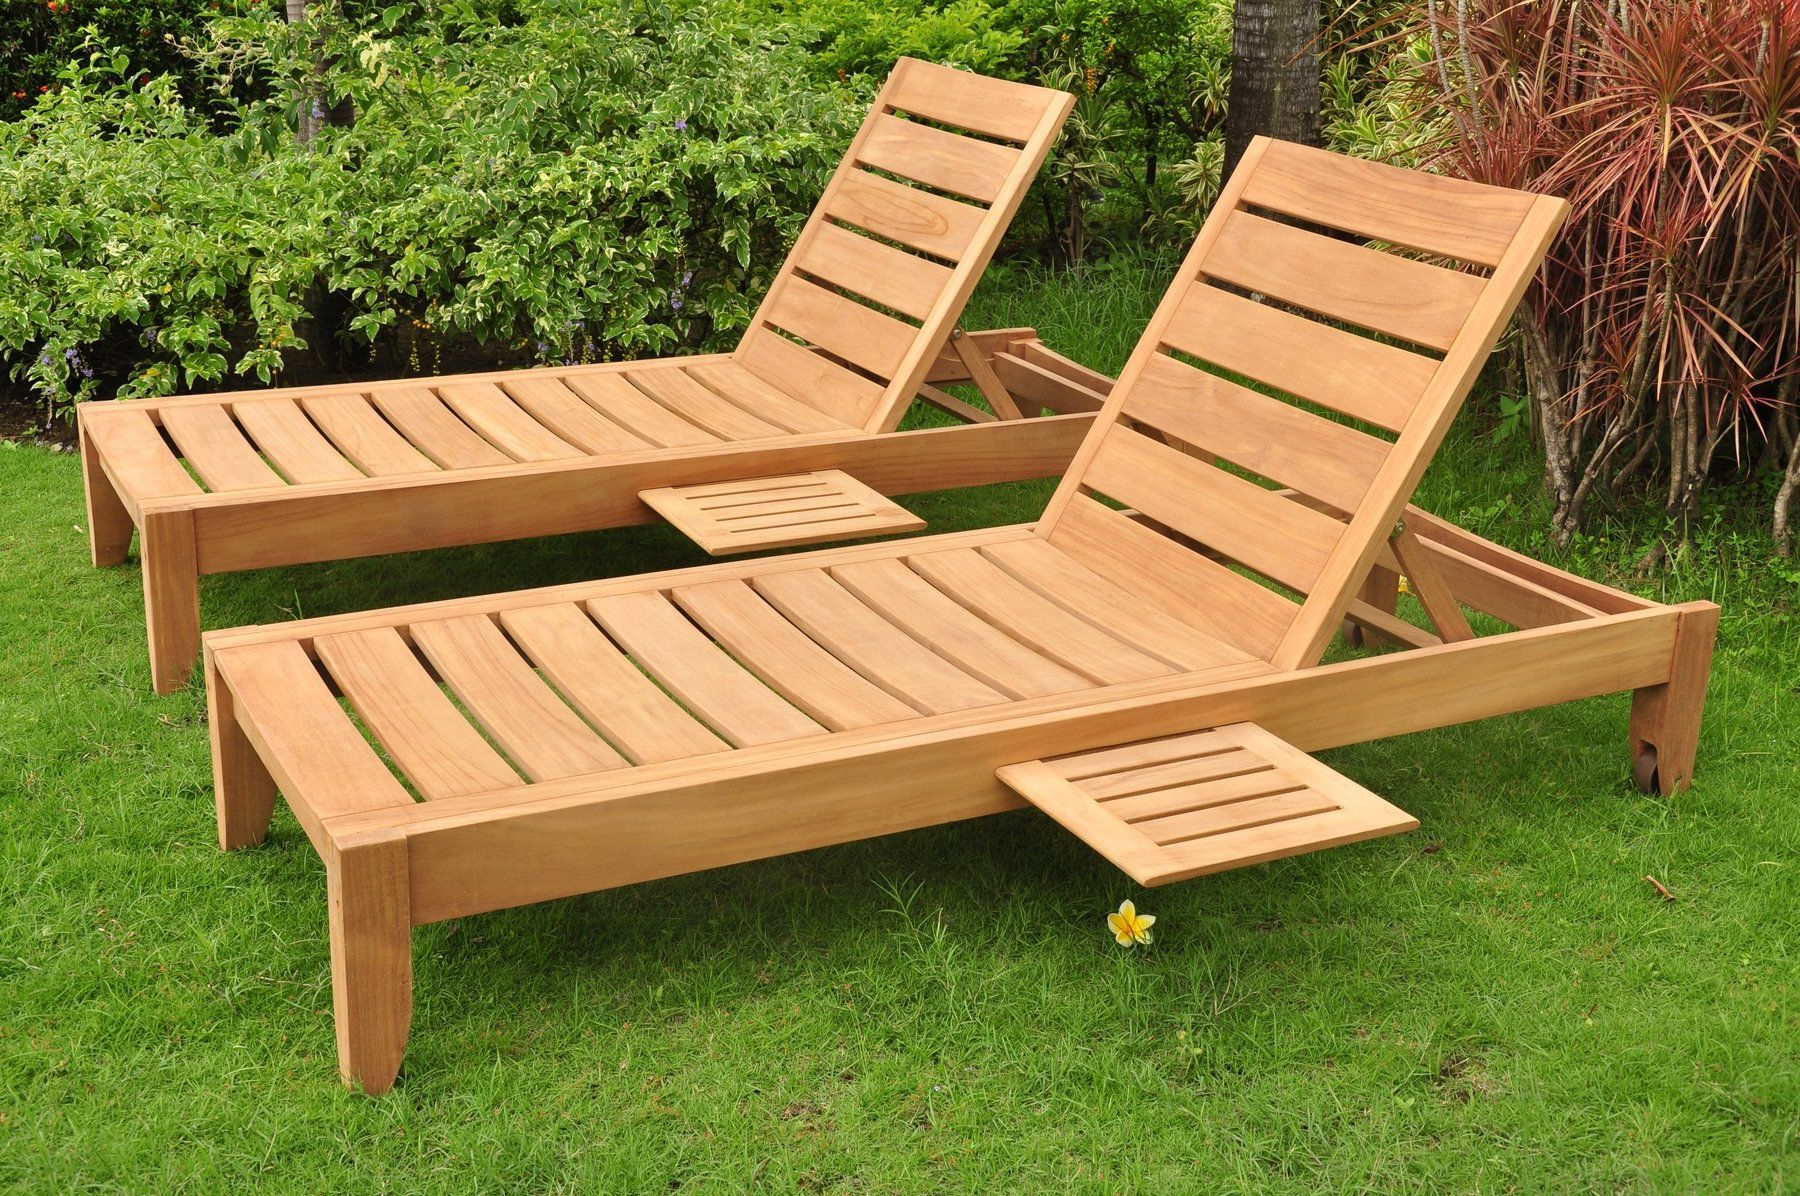 Newest Amazon : Grade A Teak Wood Luxurious Multi Position Sun Regarding Cambridge Casual Sherwood Teak Chaise Lounges (View 16 of 25)